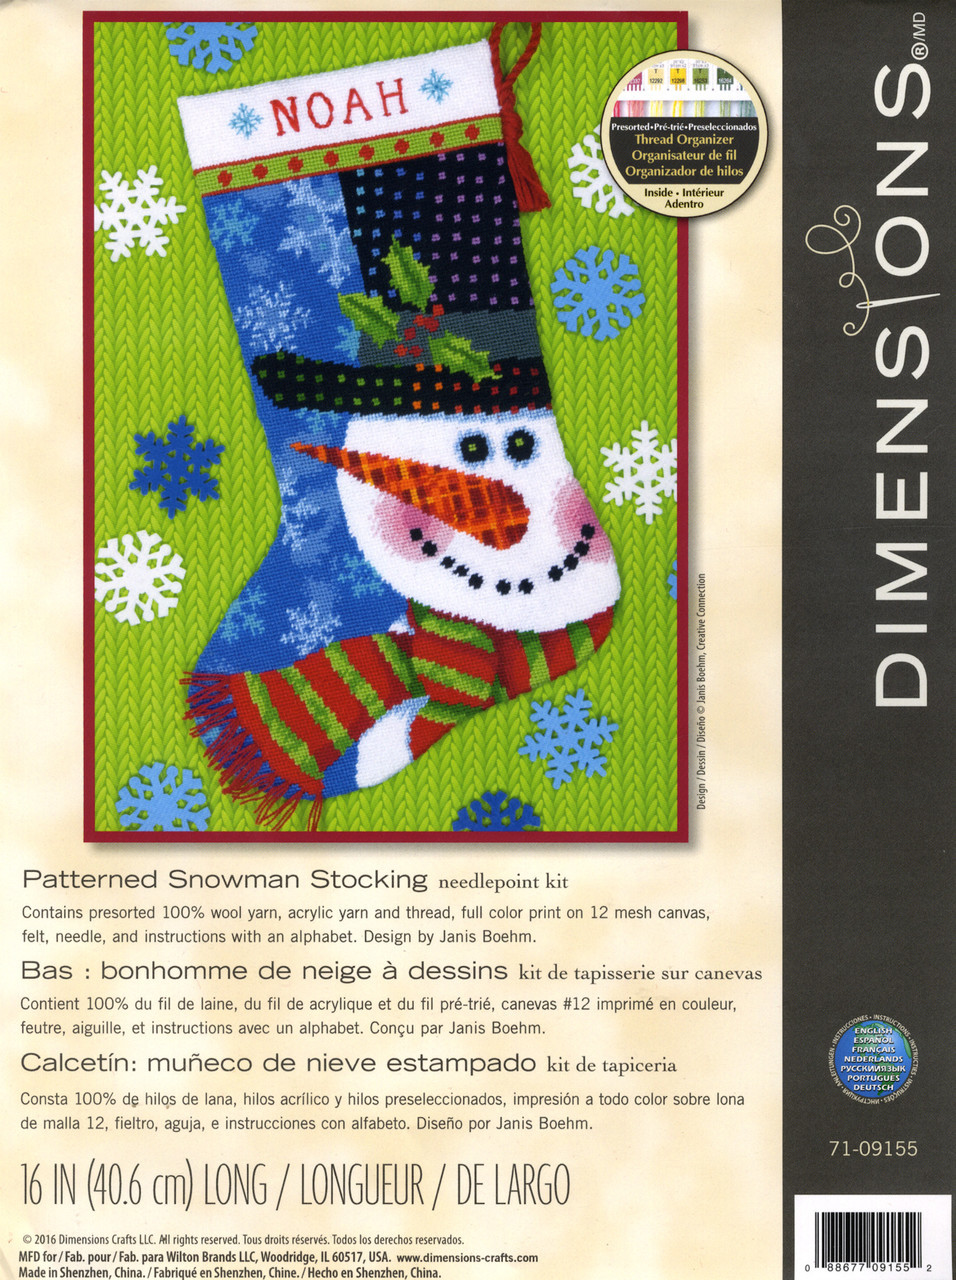 Dimensions - Patterned Snowman